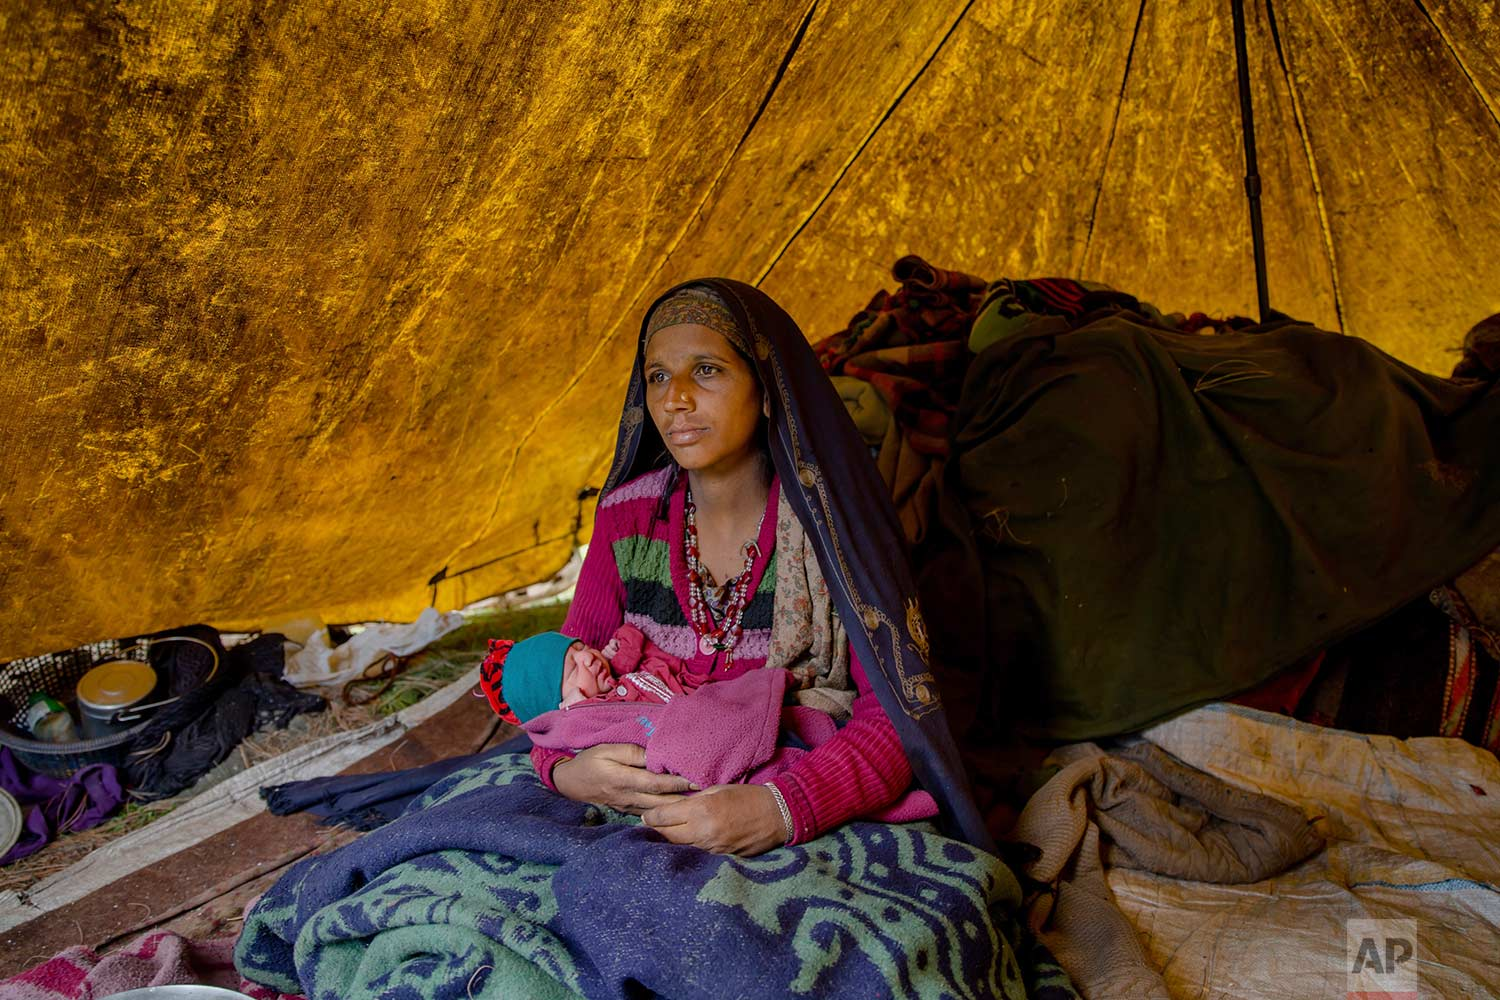 In this May 9, 2018, photo, Nasreen Bano, a Kashmiri nomadic Bakarwal woman poses for pictures along with her new born baby girl inside her tent at a temporary camp in Dubgan, 70 kilometers (43 miles) south of Srinagar, Indian controlled Kashmir. (AP Photo/Dar Yasin)